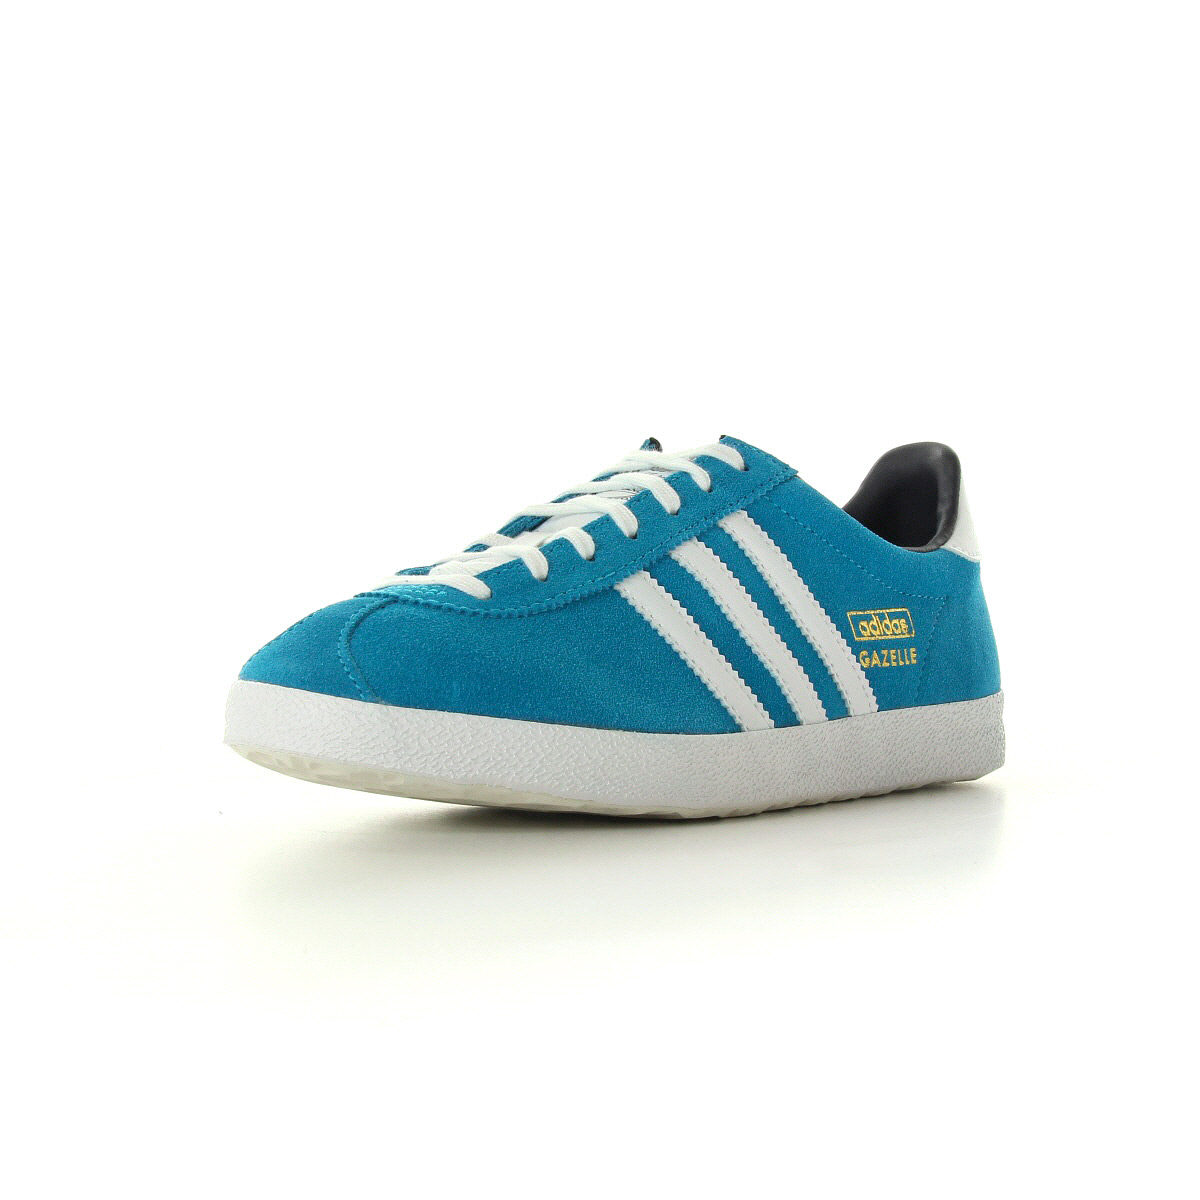 chaussures baskets adidas femme gazelle og w taille bleu turquoise bleue cuir ebay. Black Bedroom Furniture Sets. Home Design Ideas